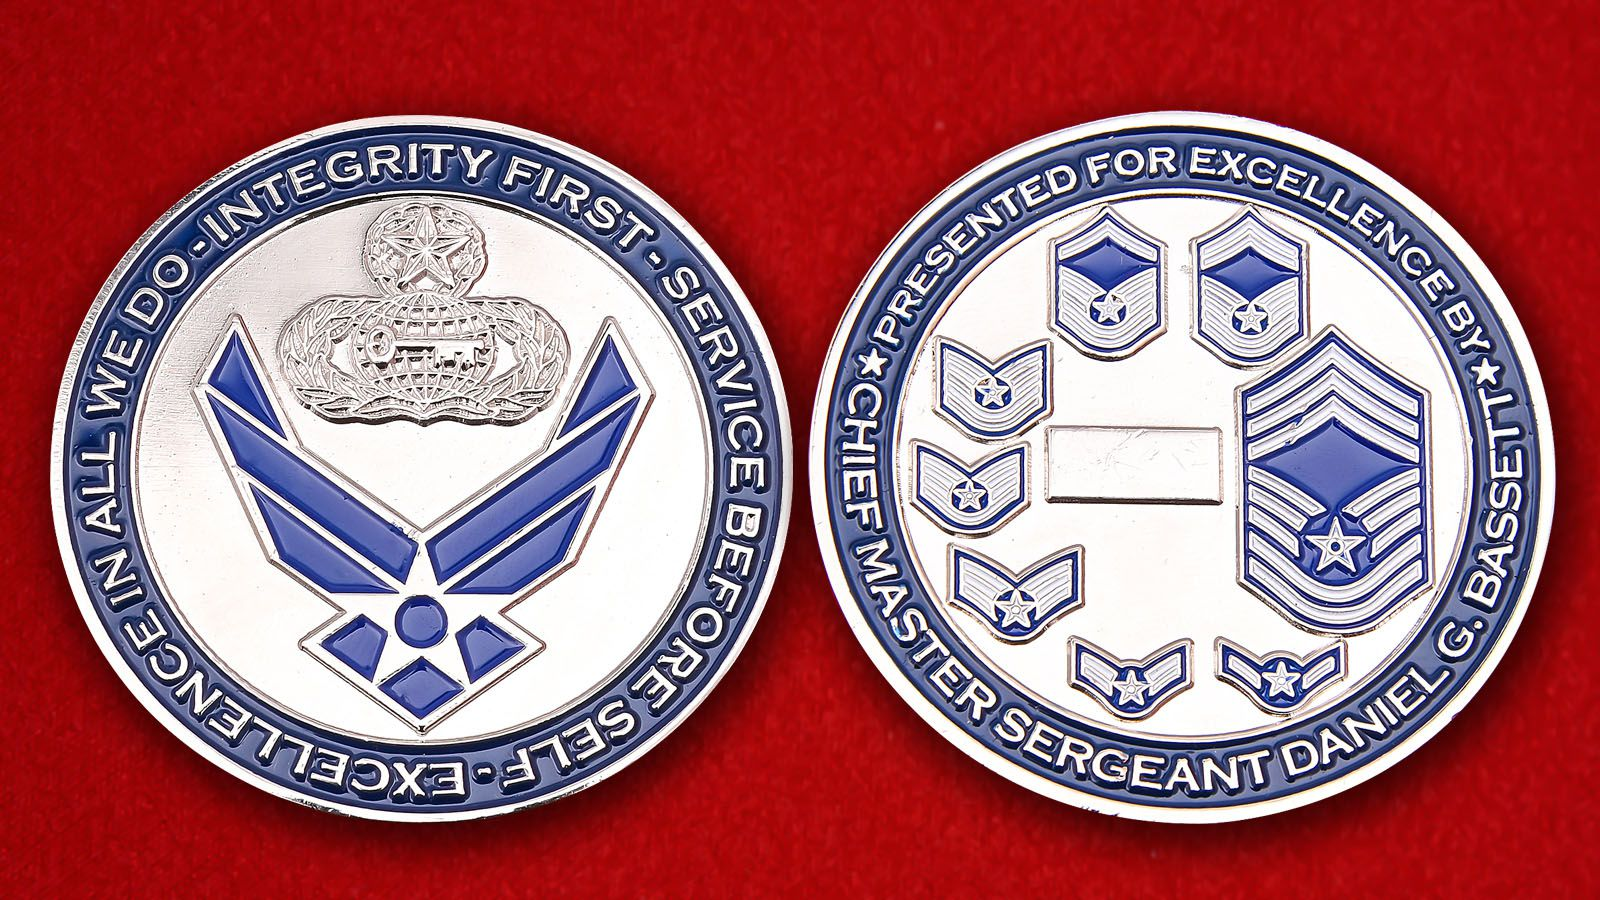 Chief Master Sergeant US Air Force Daniel G. Bassett Presented For Excellent Challenge Coin - obverse and reverse